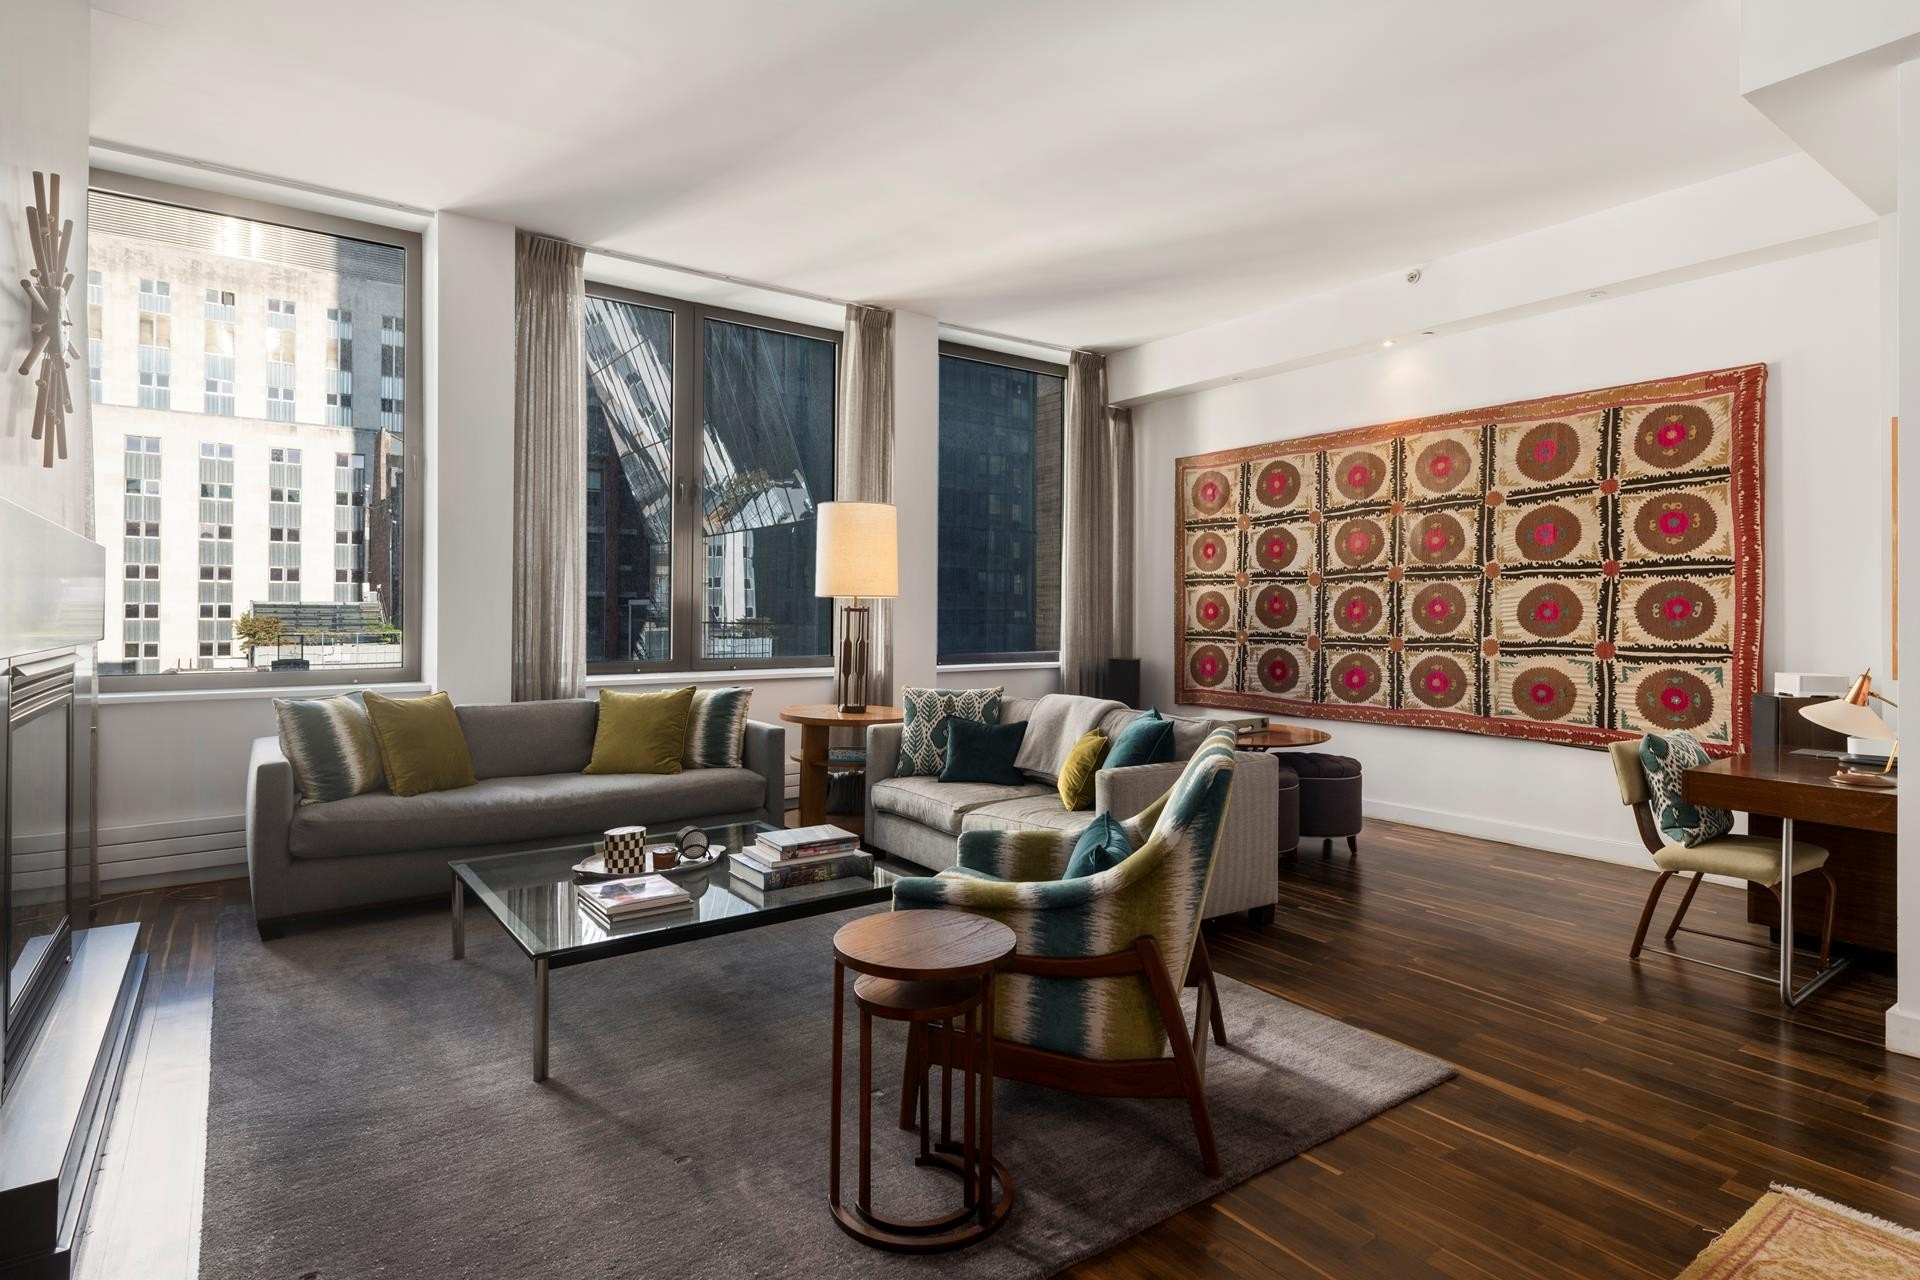 Property en The Story House, 36 East 22nd St, 6A Flatiron District, New York, NY 10010